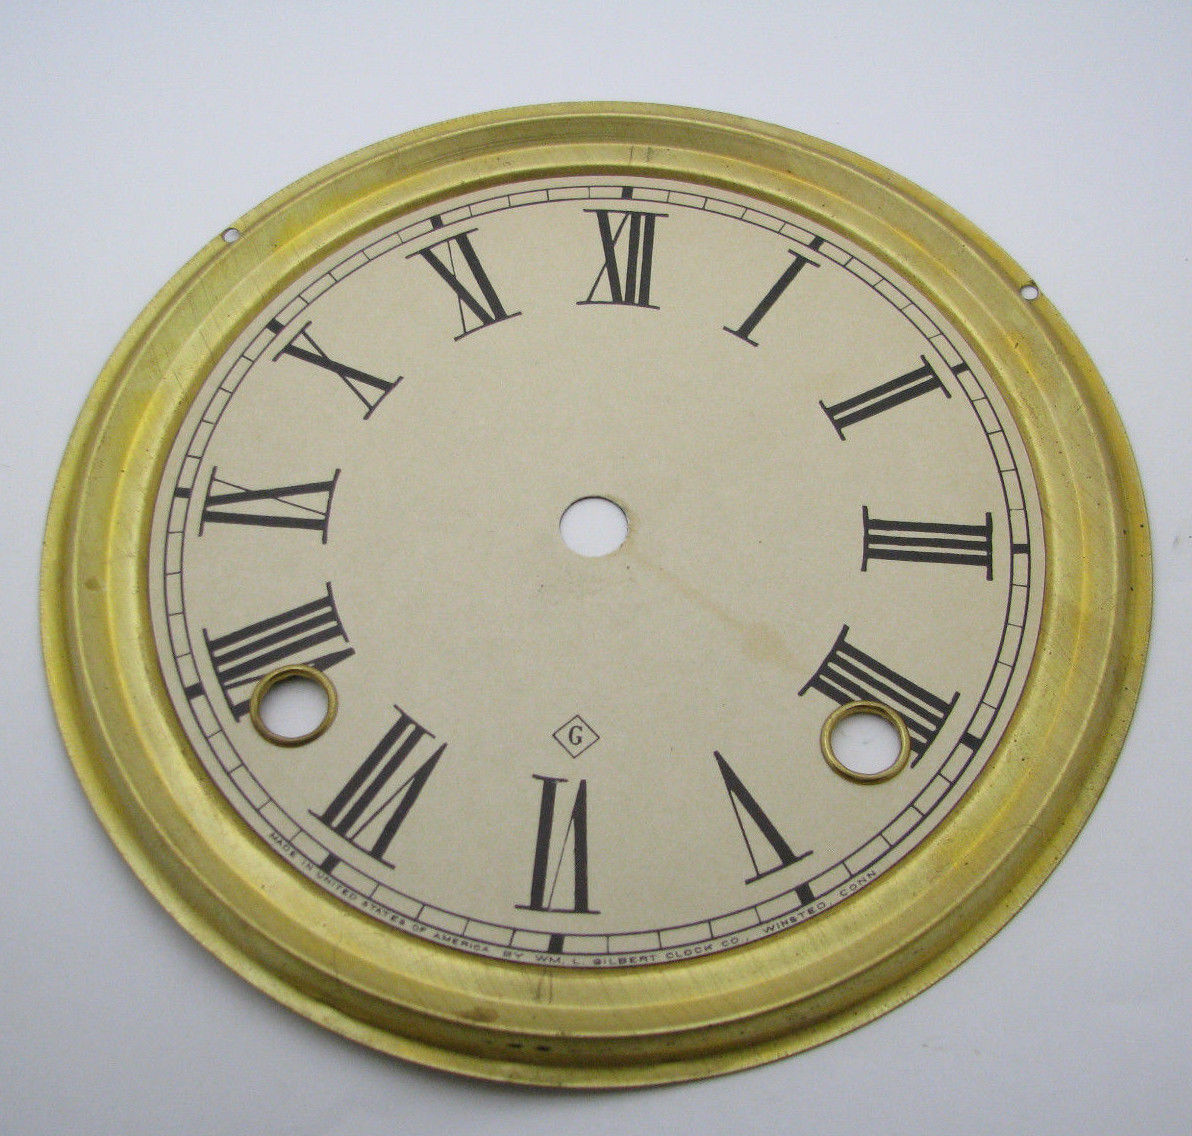 gilbert kitchen clock espresso cabinets antique dial and pan parts repair